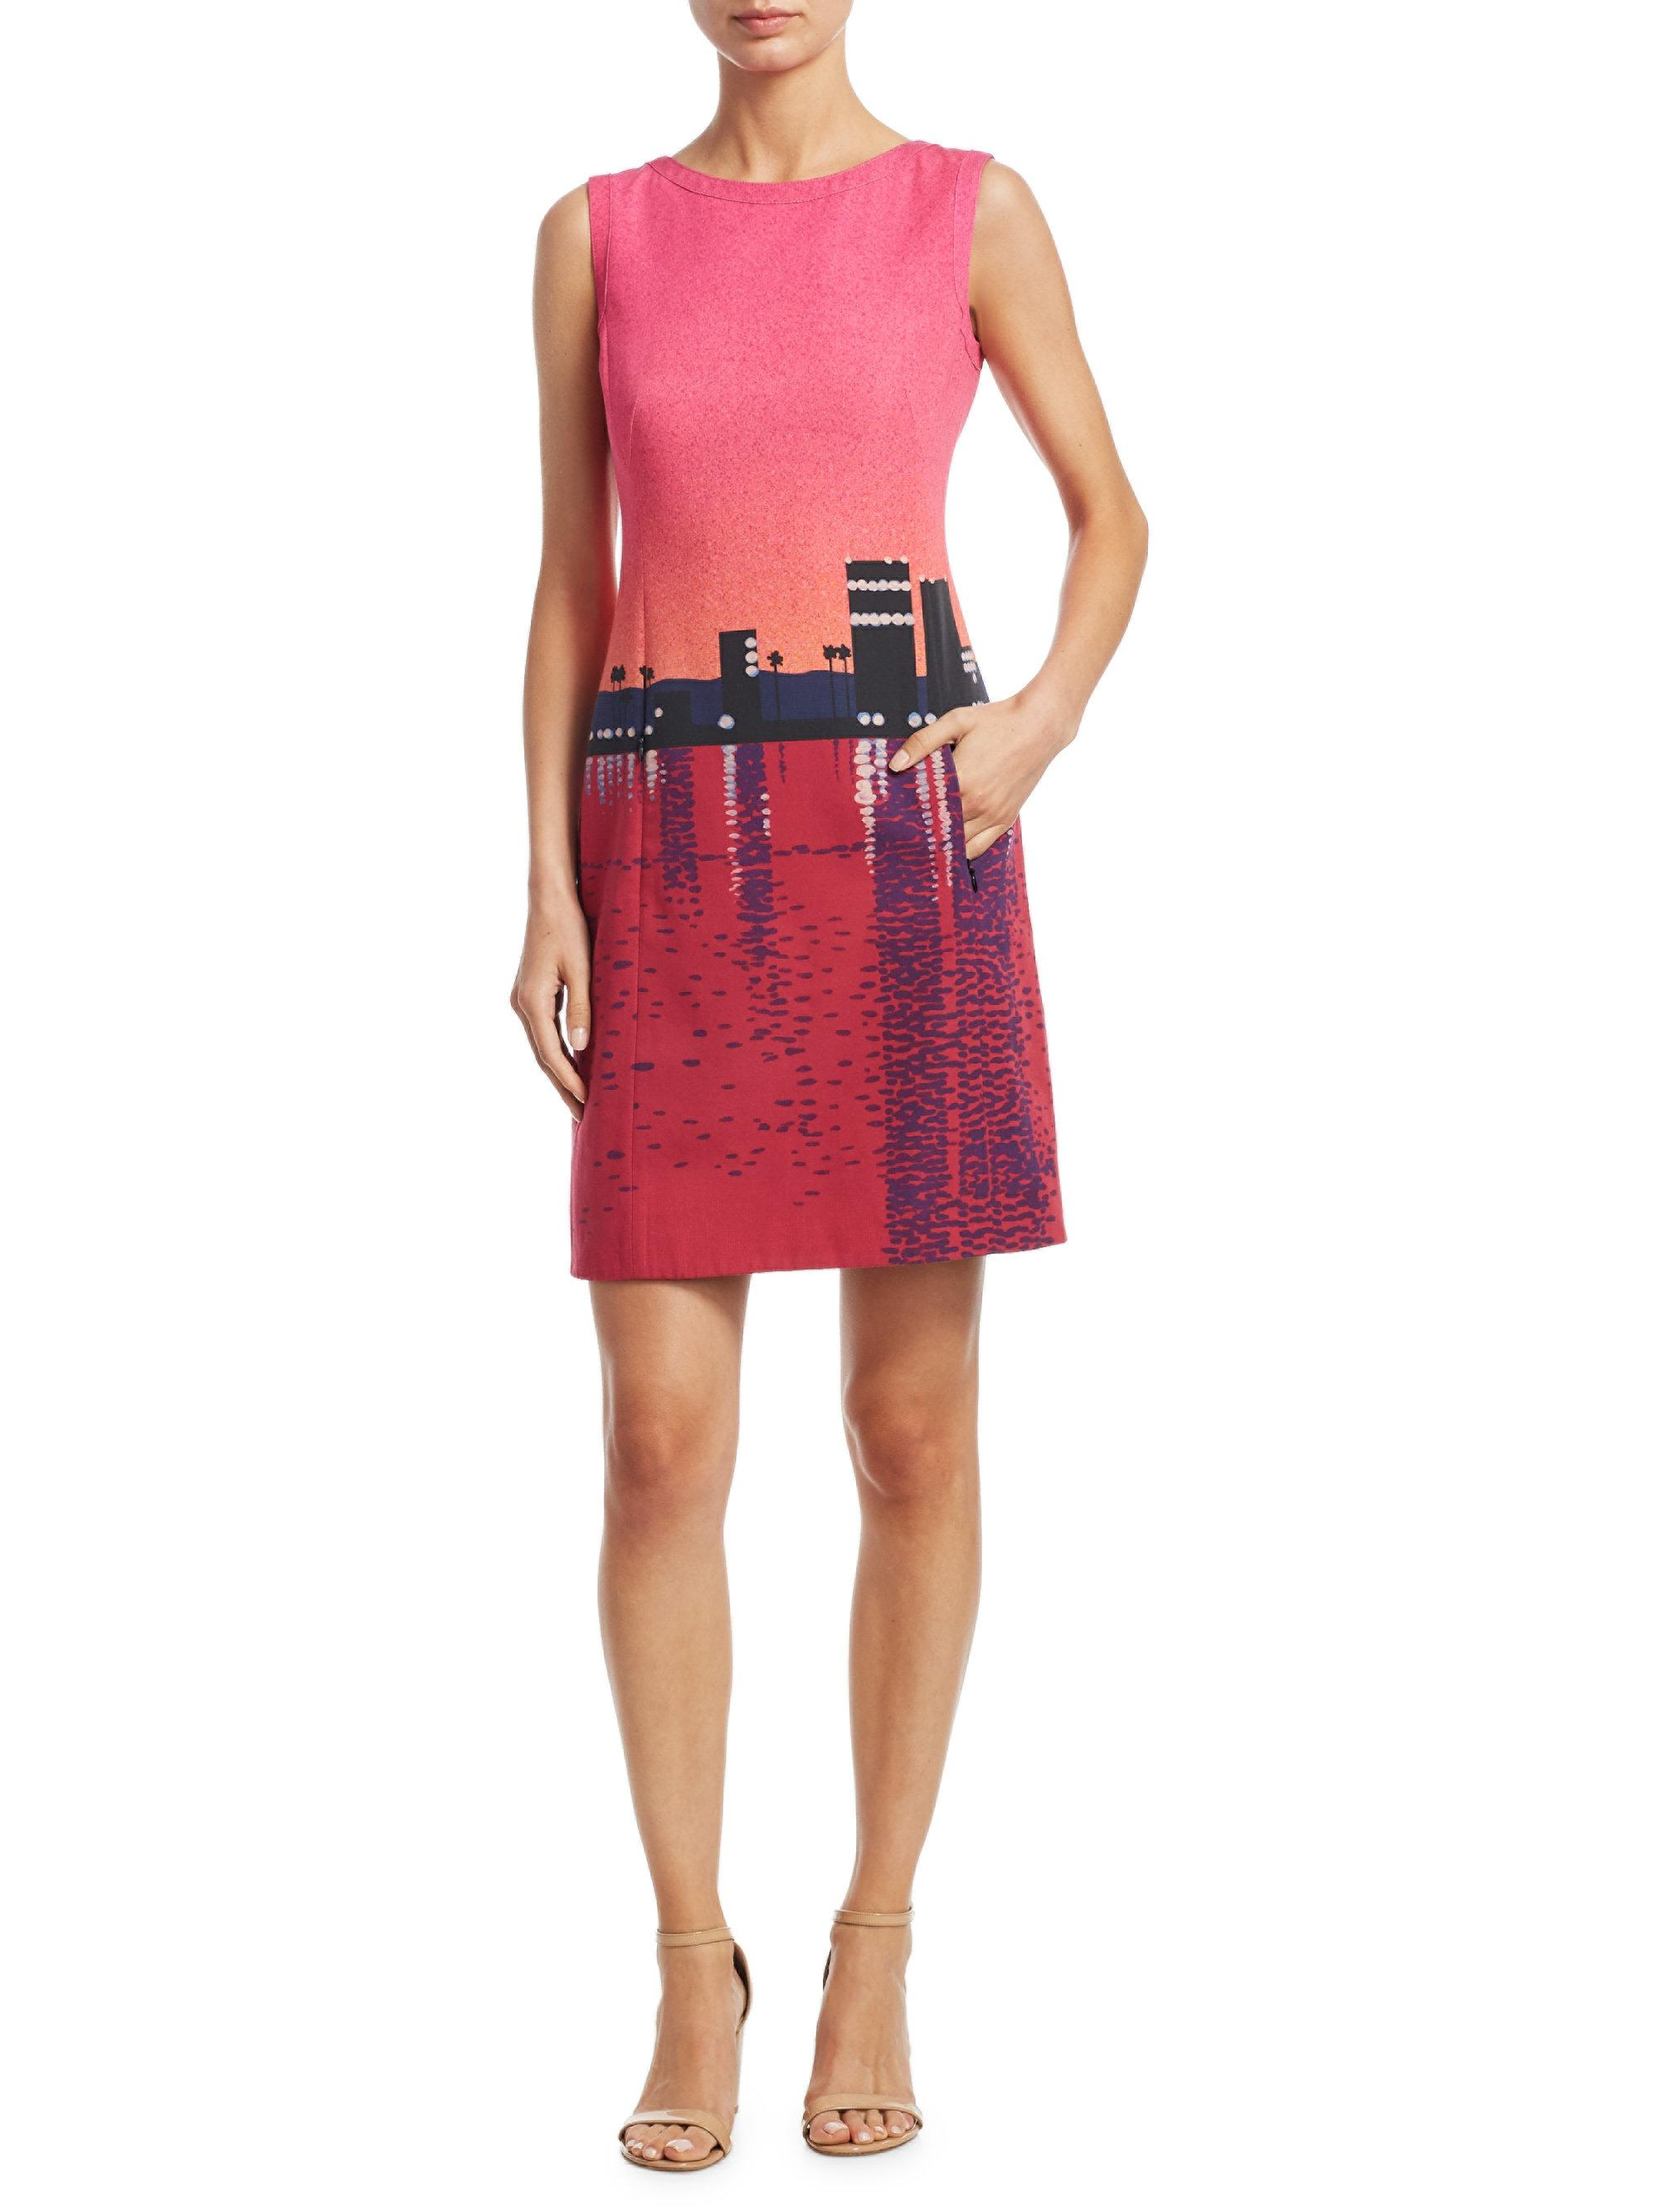 Lyst - Akris Punto Sunset Print Cotton Shift Dress in Red